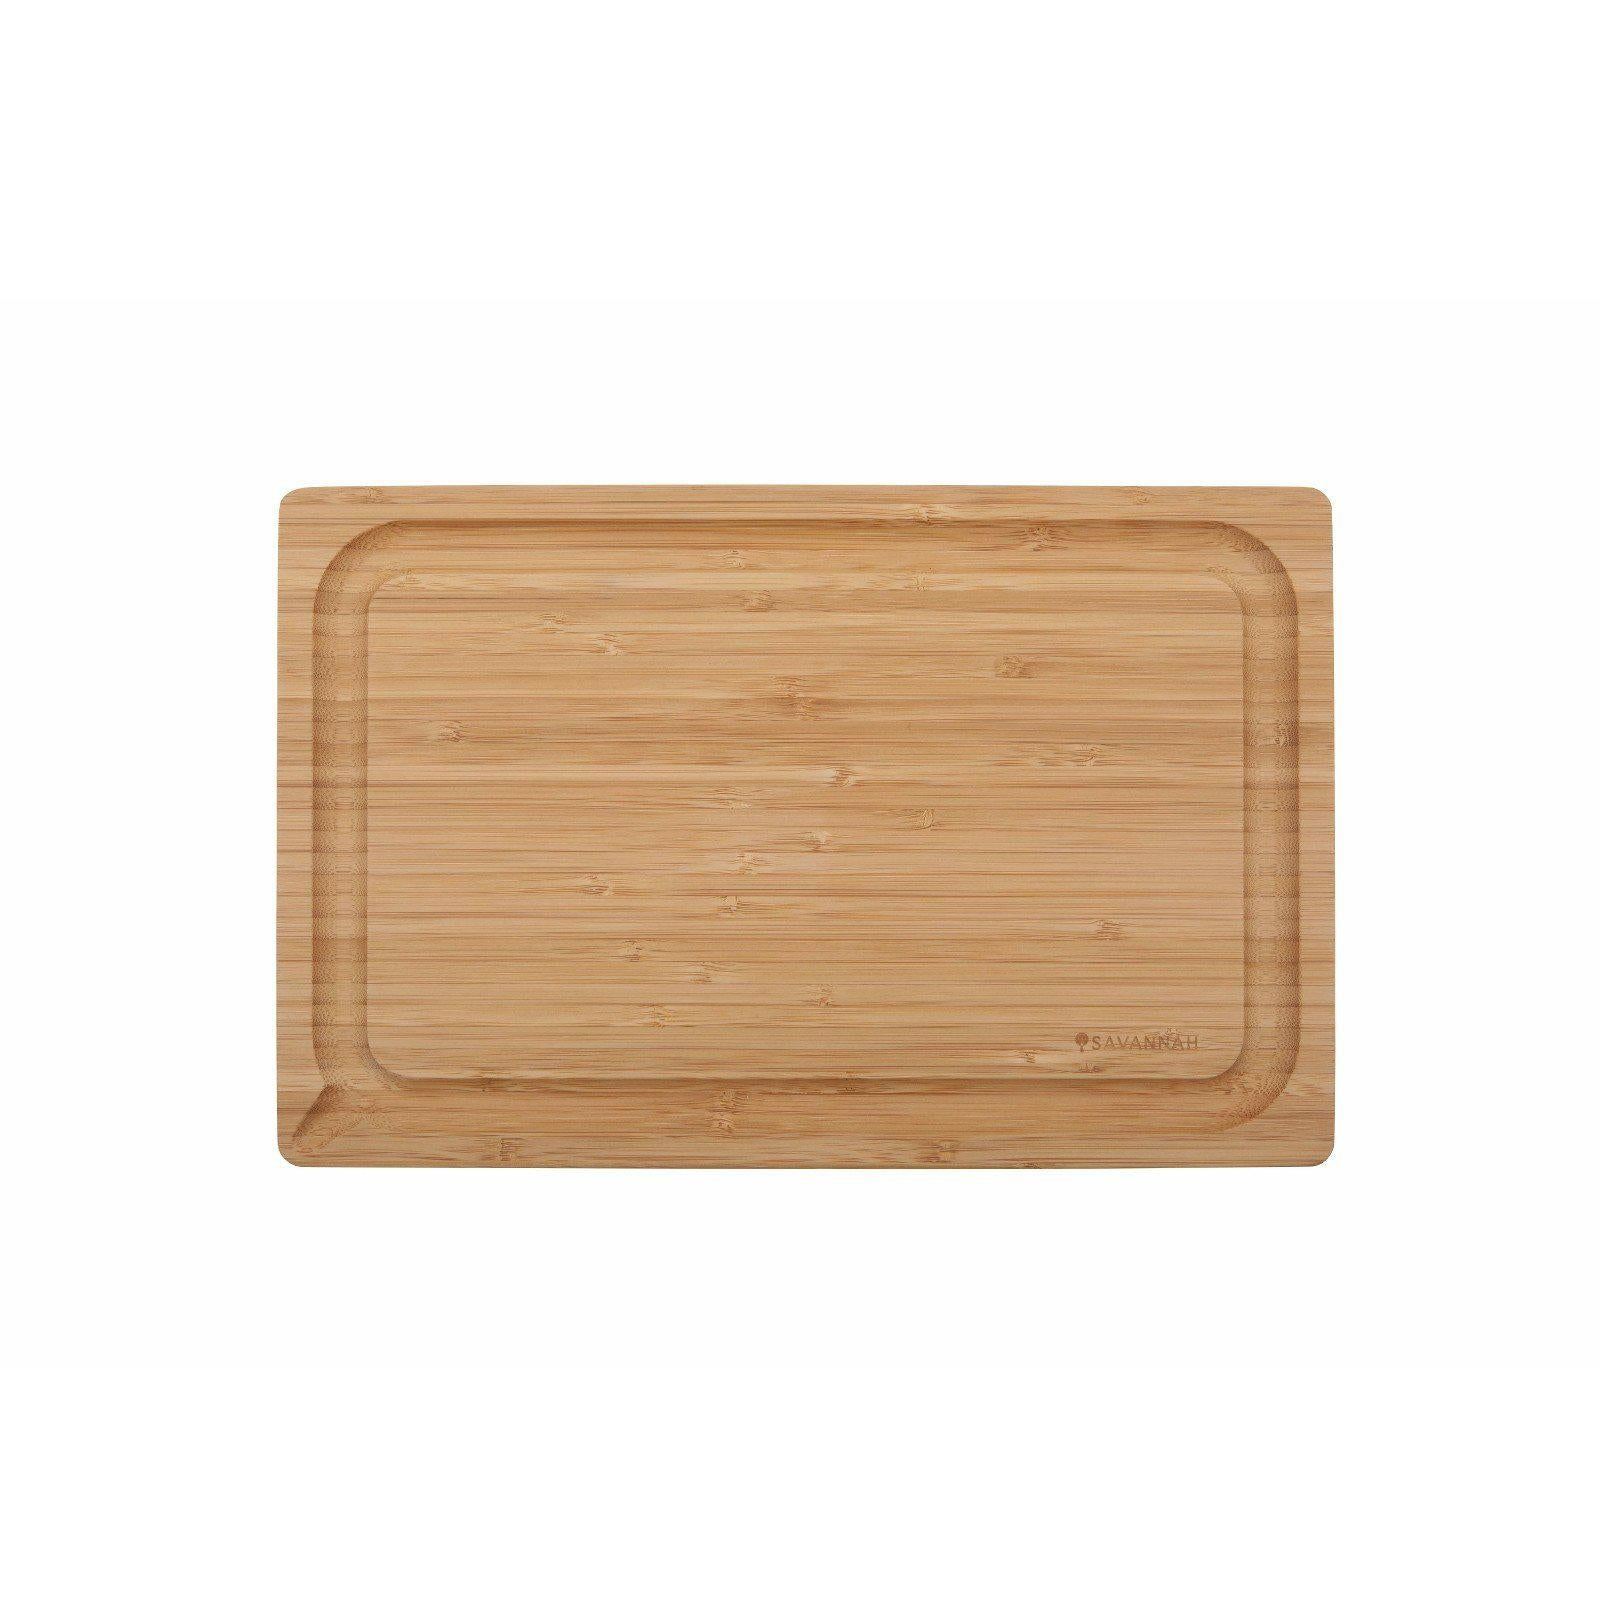 Large Professional Bamboo Cutting Board-cutting board-Chef's Quality Cookware